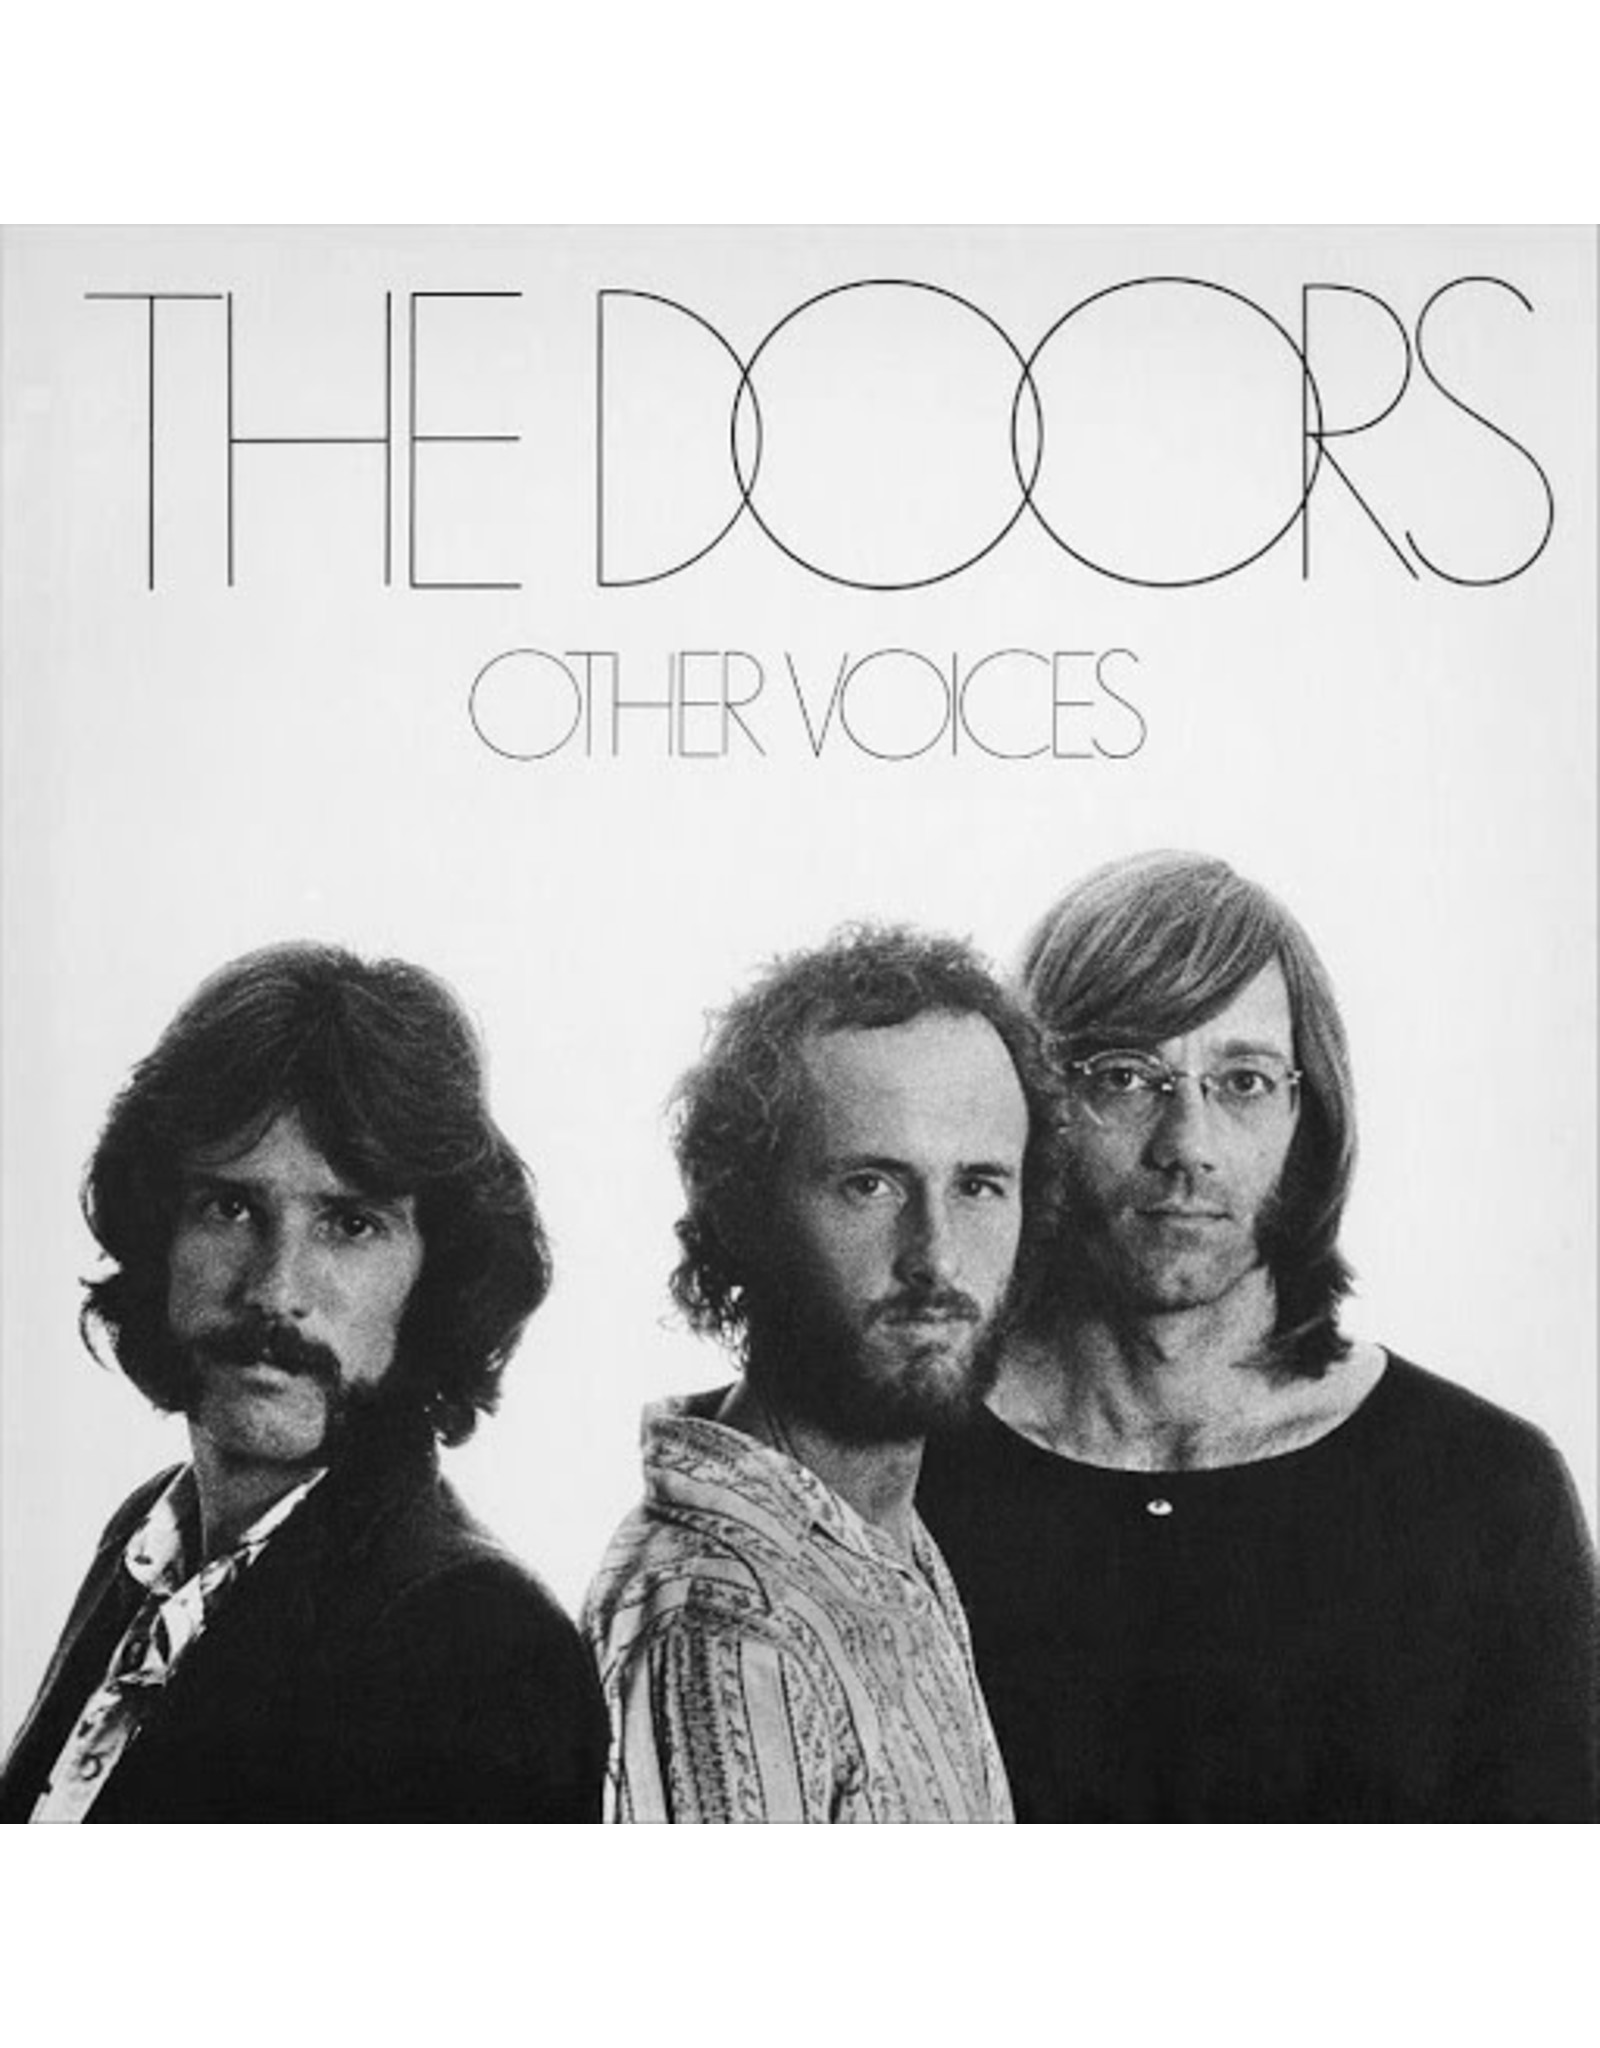 Doors, The - Other Voices LP